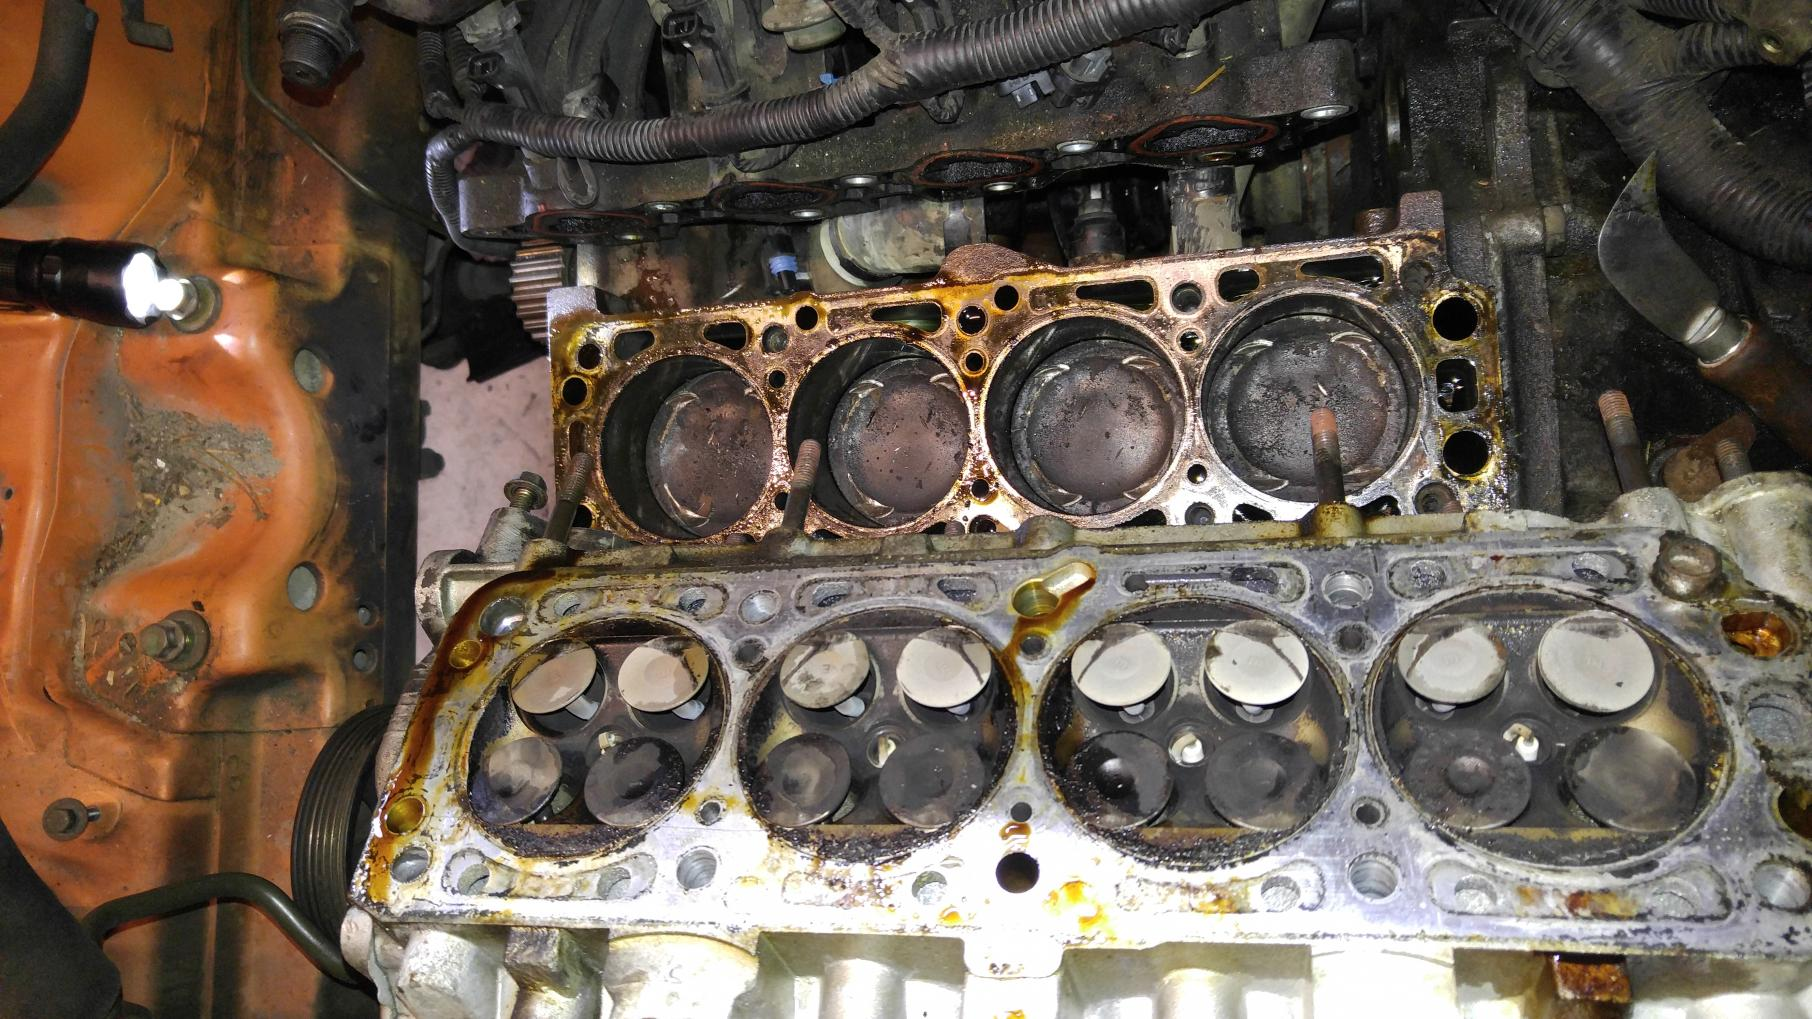 2004 Chevy Aveo Timing Belt/ Engine Seize